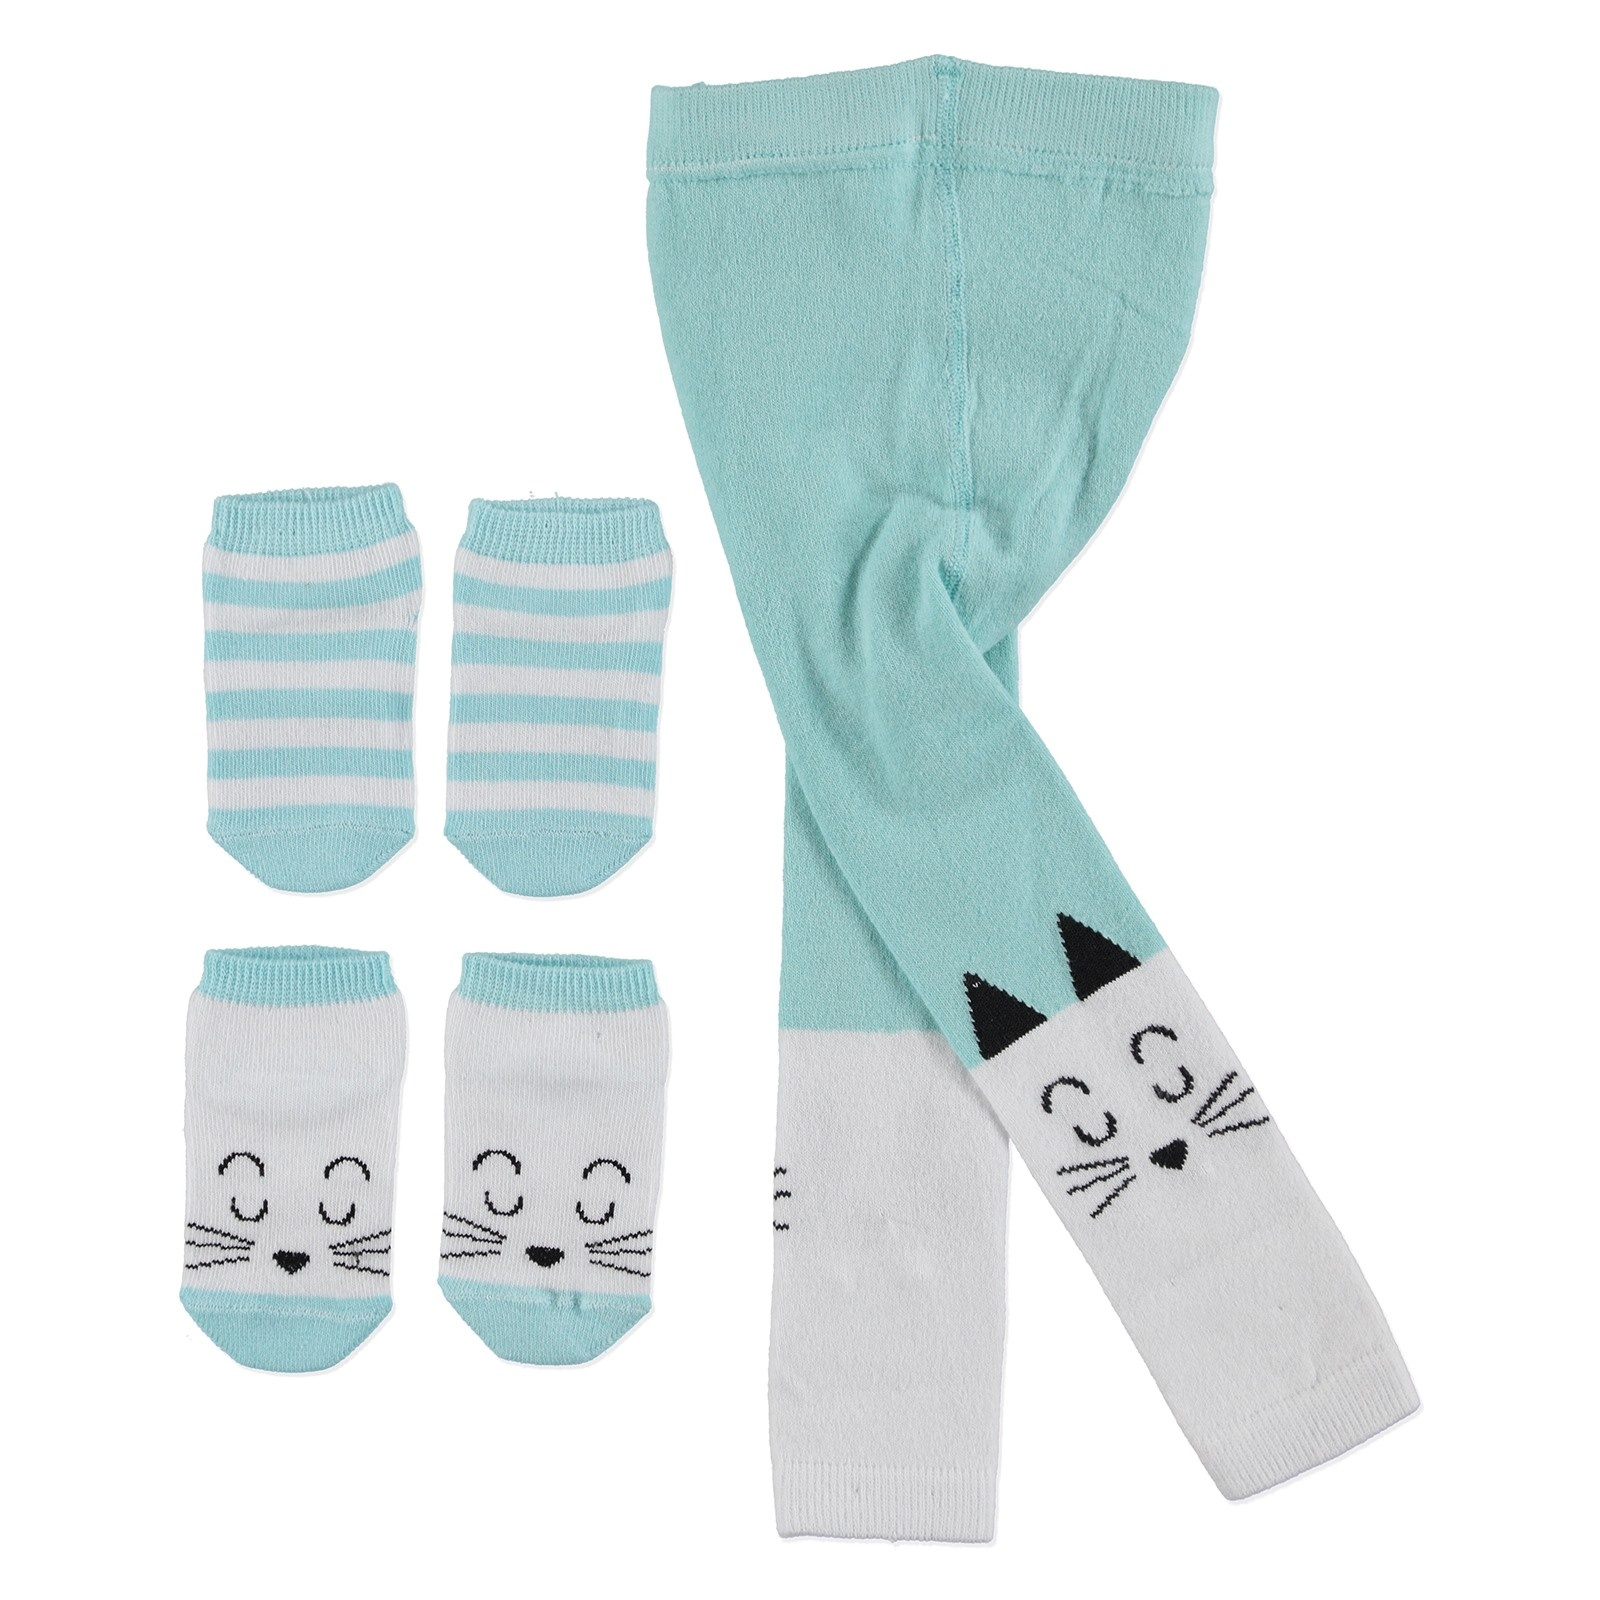 Ebebek HelloBaby Baby Socks Leggings